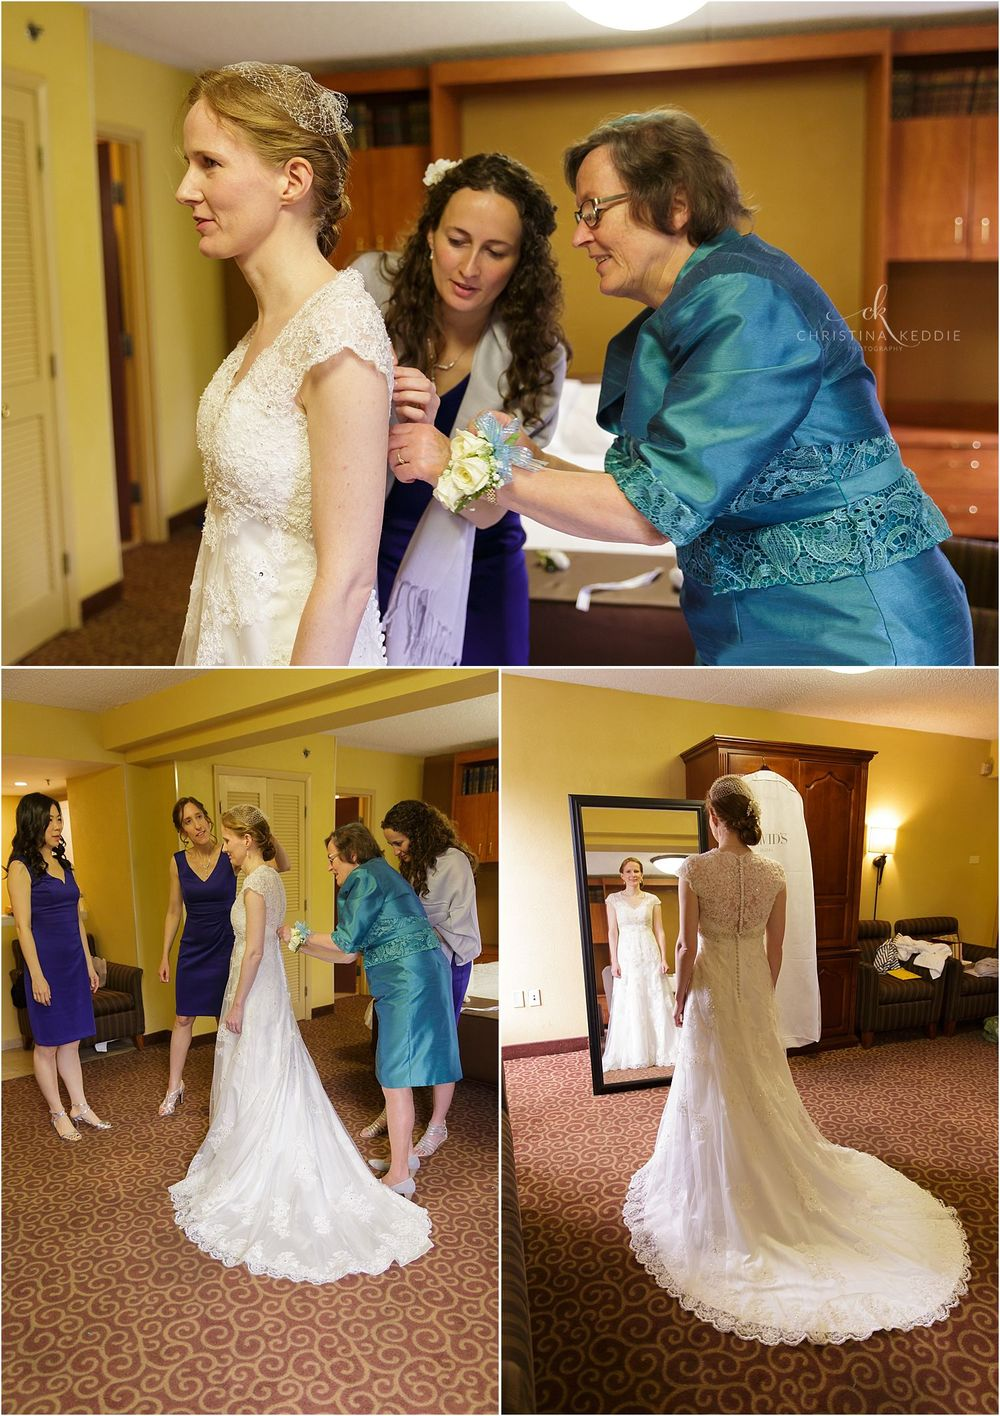 Bride's mother and sisters buttoning gown | Christina Keddie Photography | Cherry Hill NJ wedding photographer